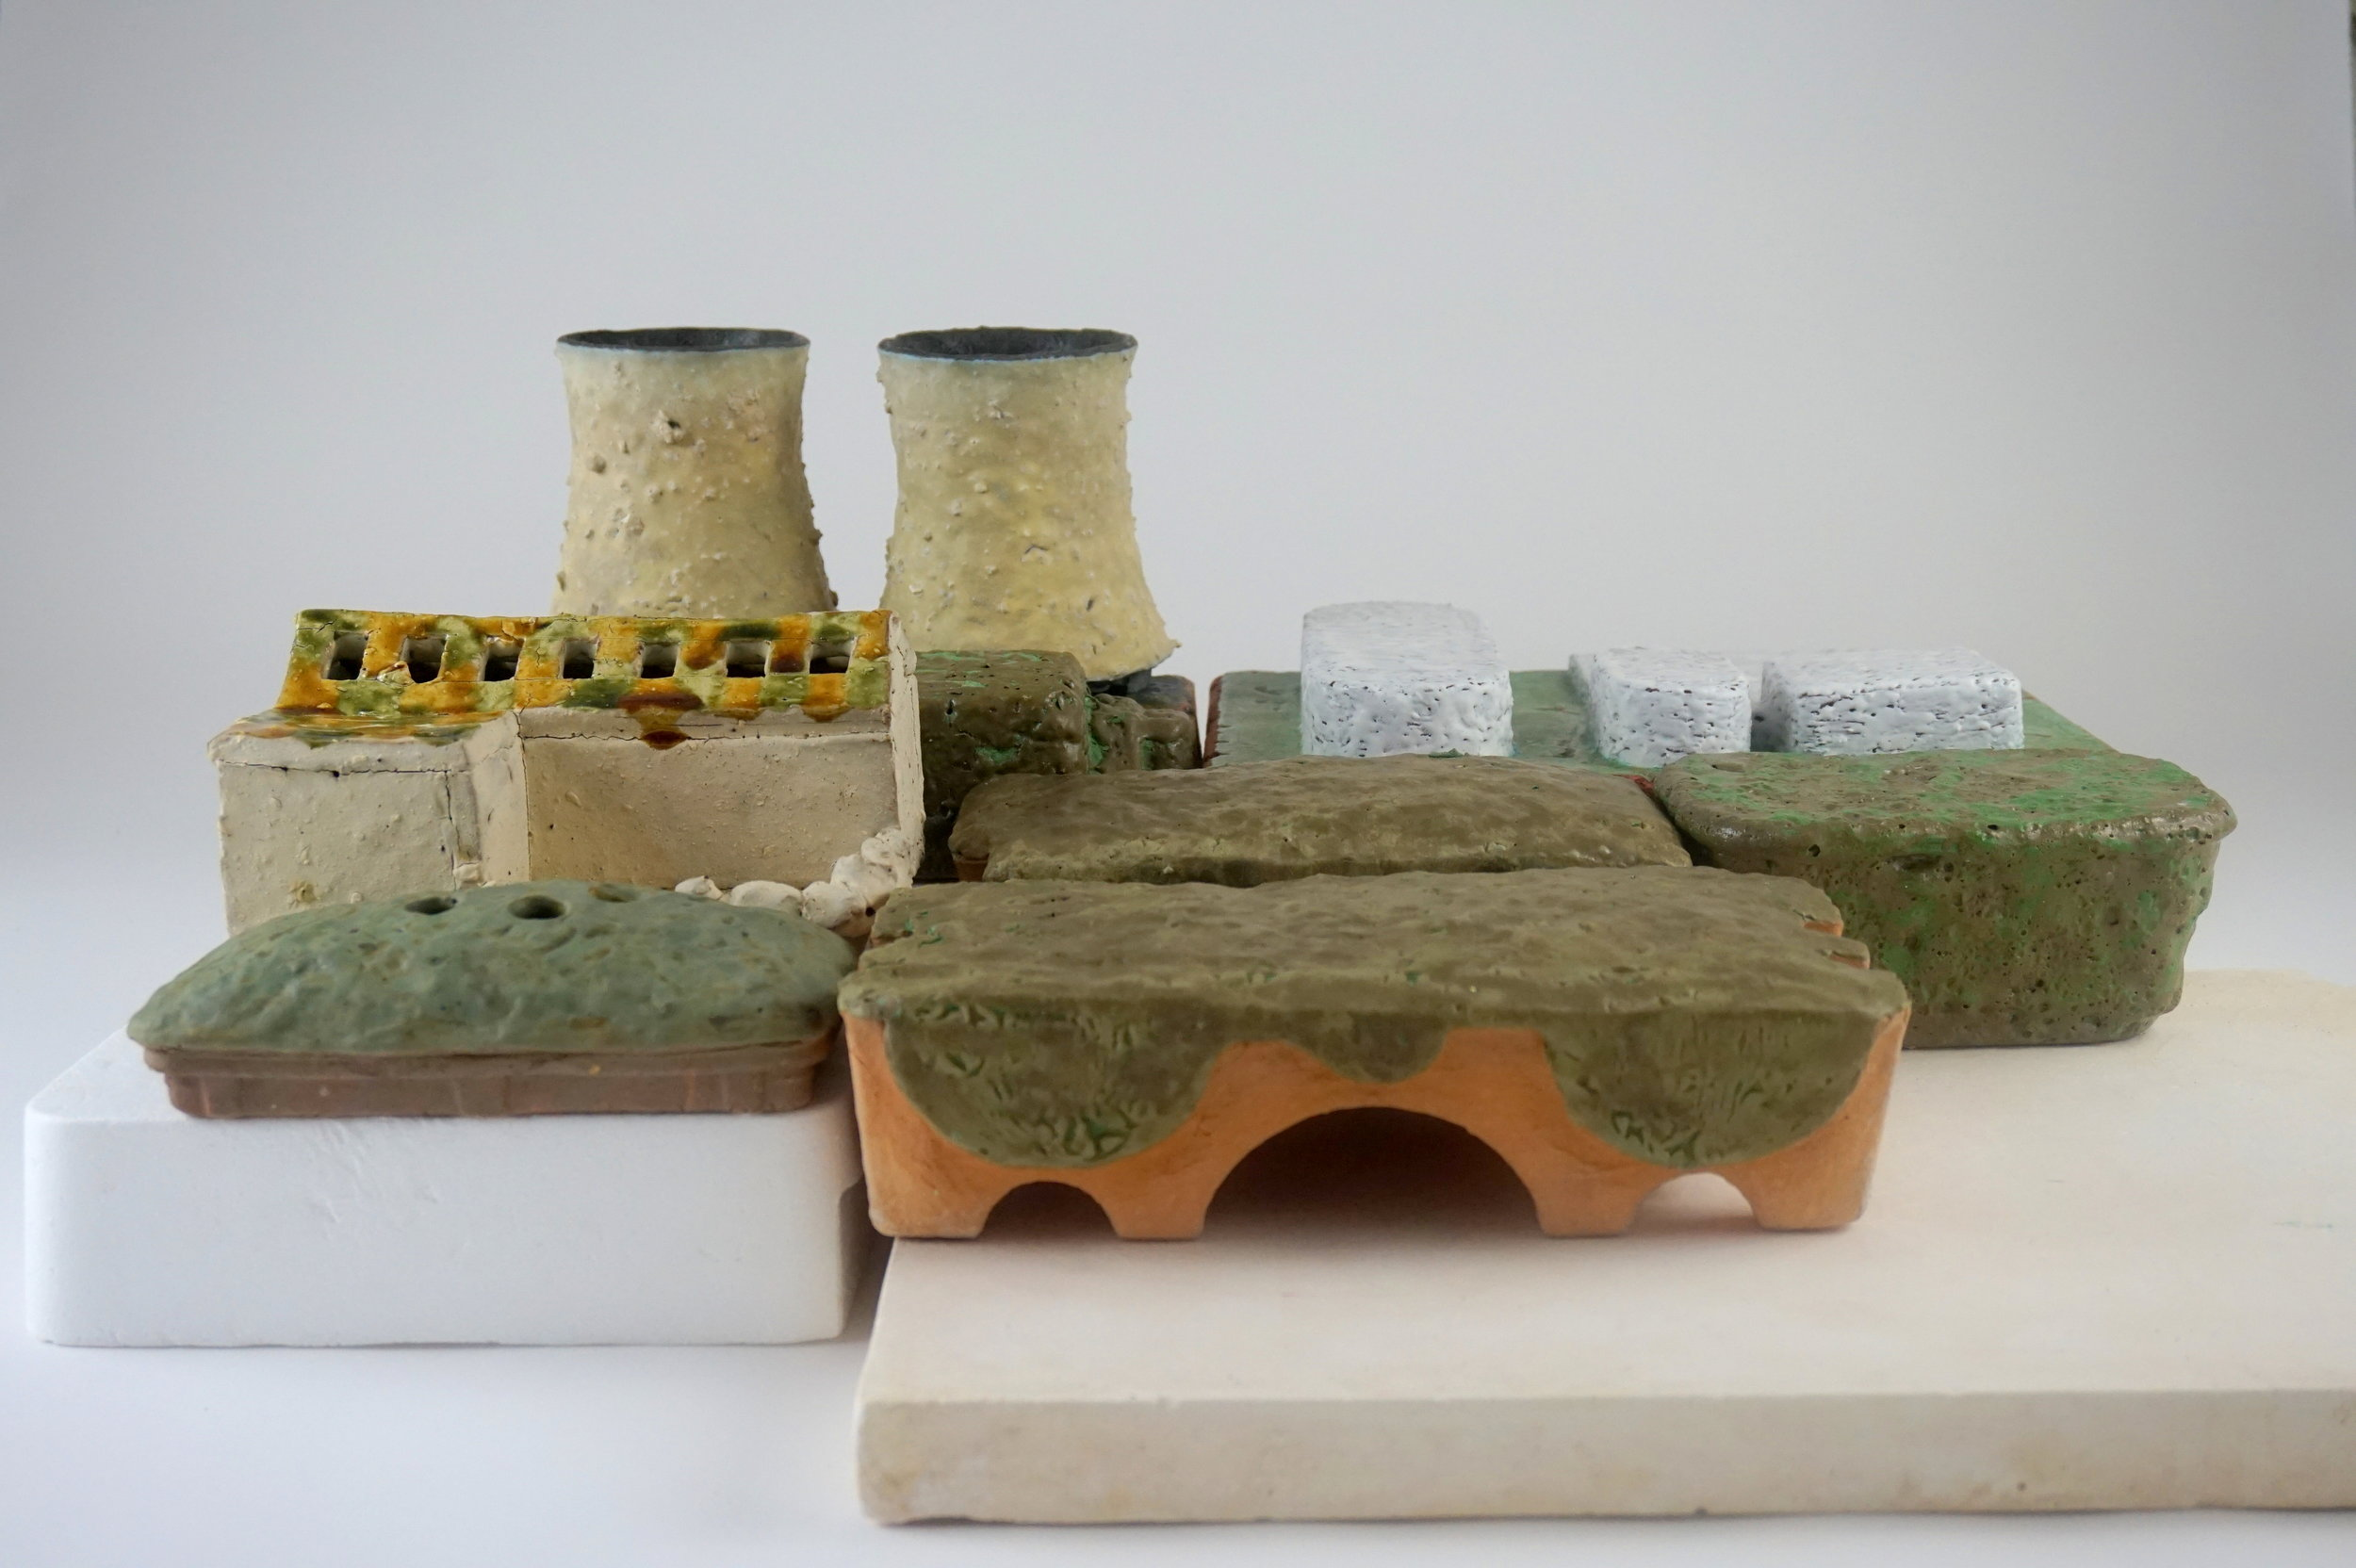 05 Cooling Tower Vases and Abandoned House Flower Brick.JPG